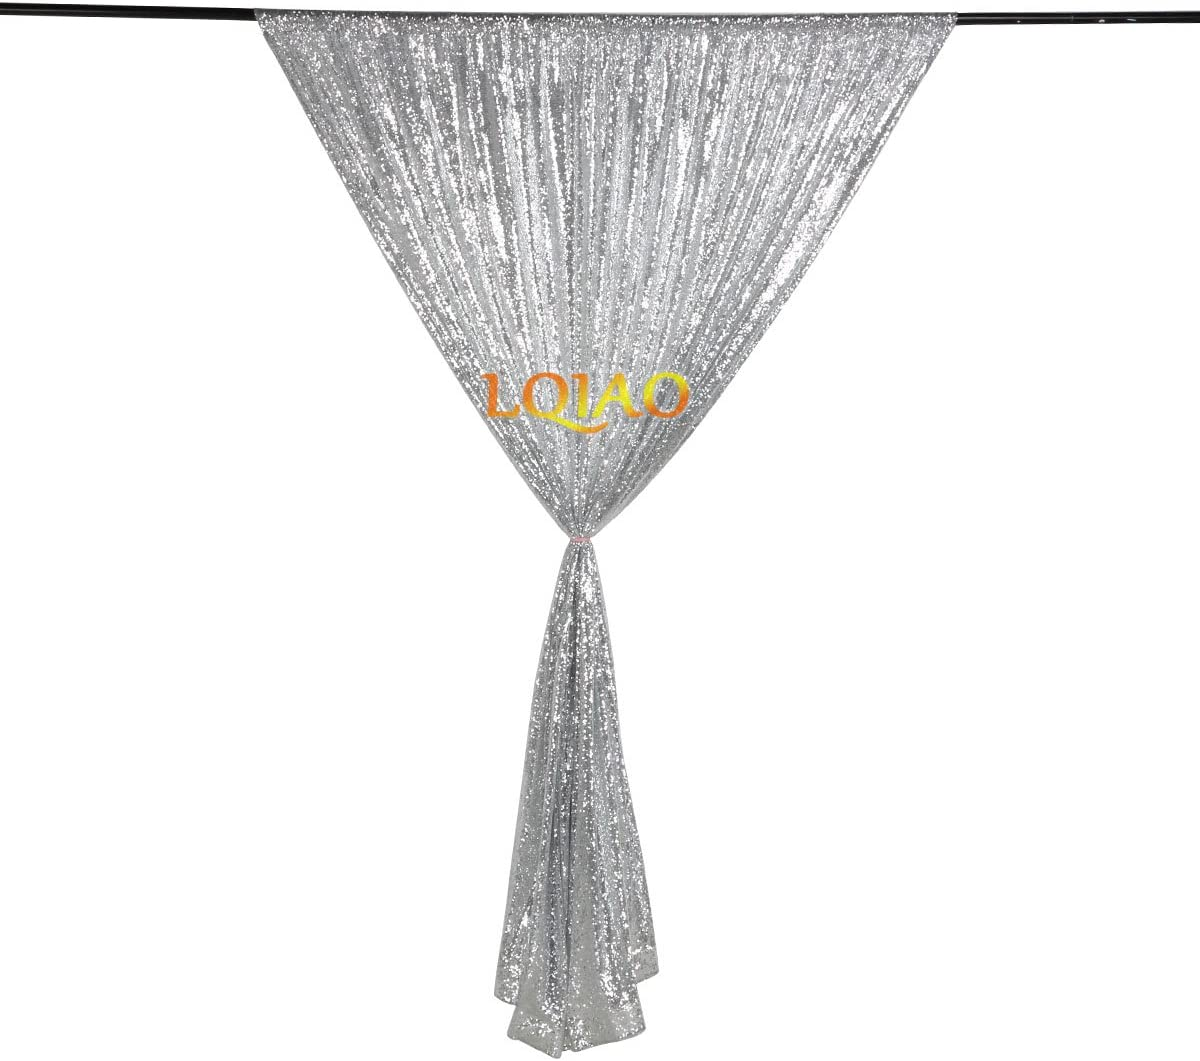 Pocket 7x7FT 210x215cm LQIAO Silver-Sequin Backdrop CURTAIN-7FTx7FT Sequin Photo Backdrop,Photo Booth Background,Sequence Christmas//New Year Backdrop Curtain